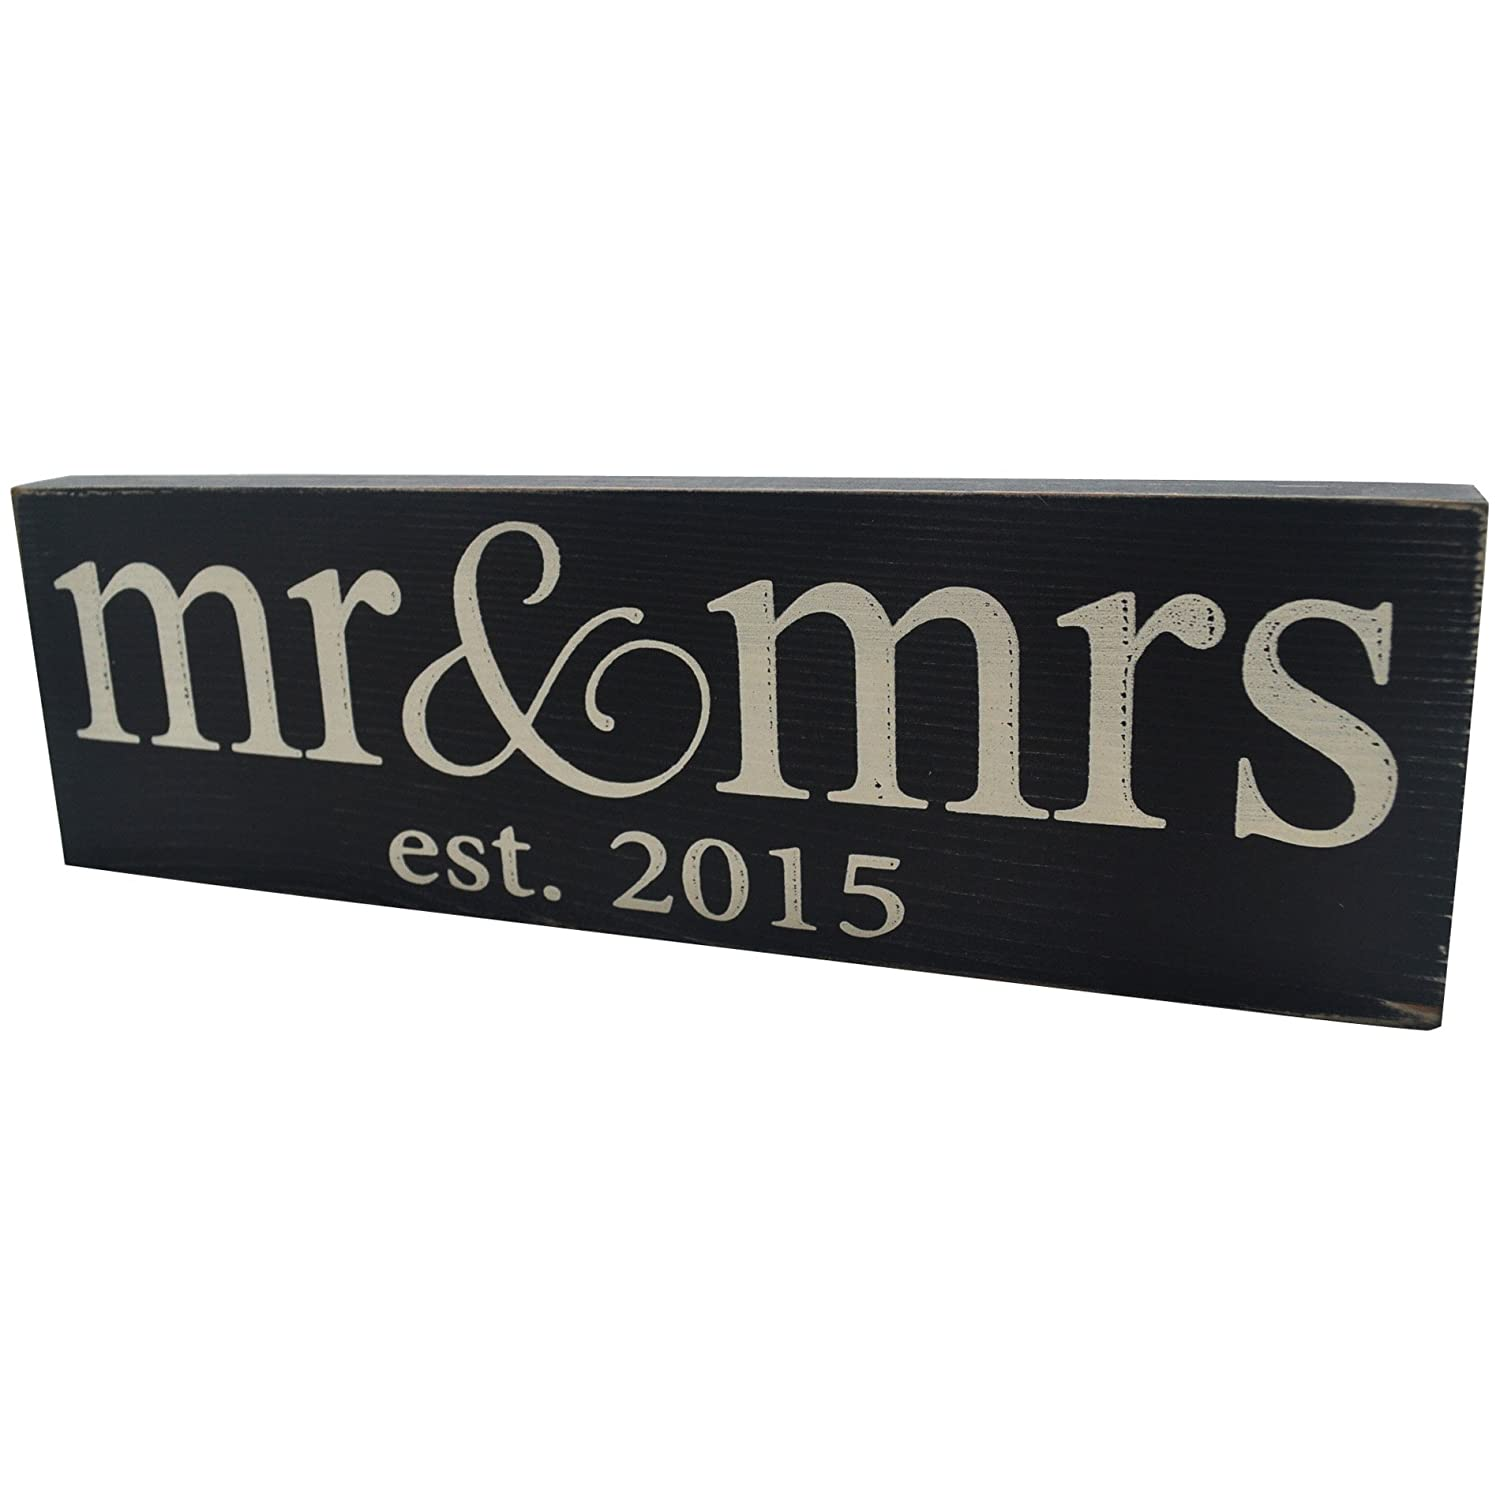 1 X Mr & Mrs Est. 2015 Vintage Wood Sign for Wedding Decoration, Prop, Gift or Wall Decor — PERFECT WEDDING GIFT!